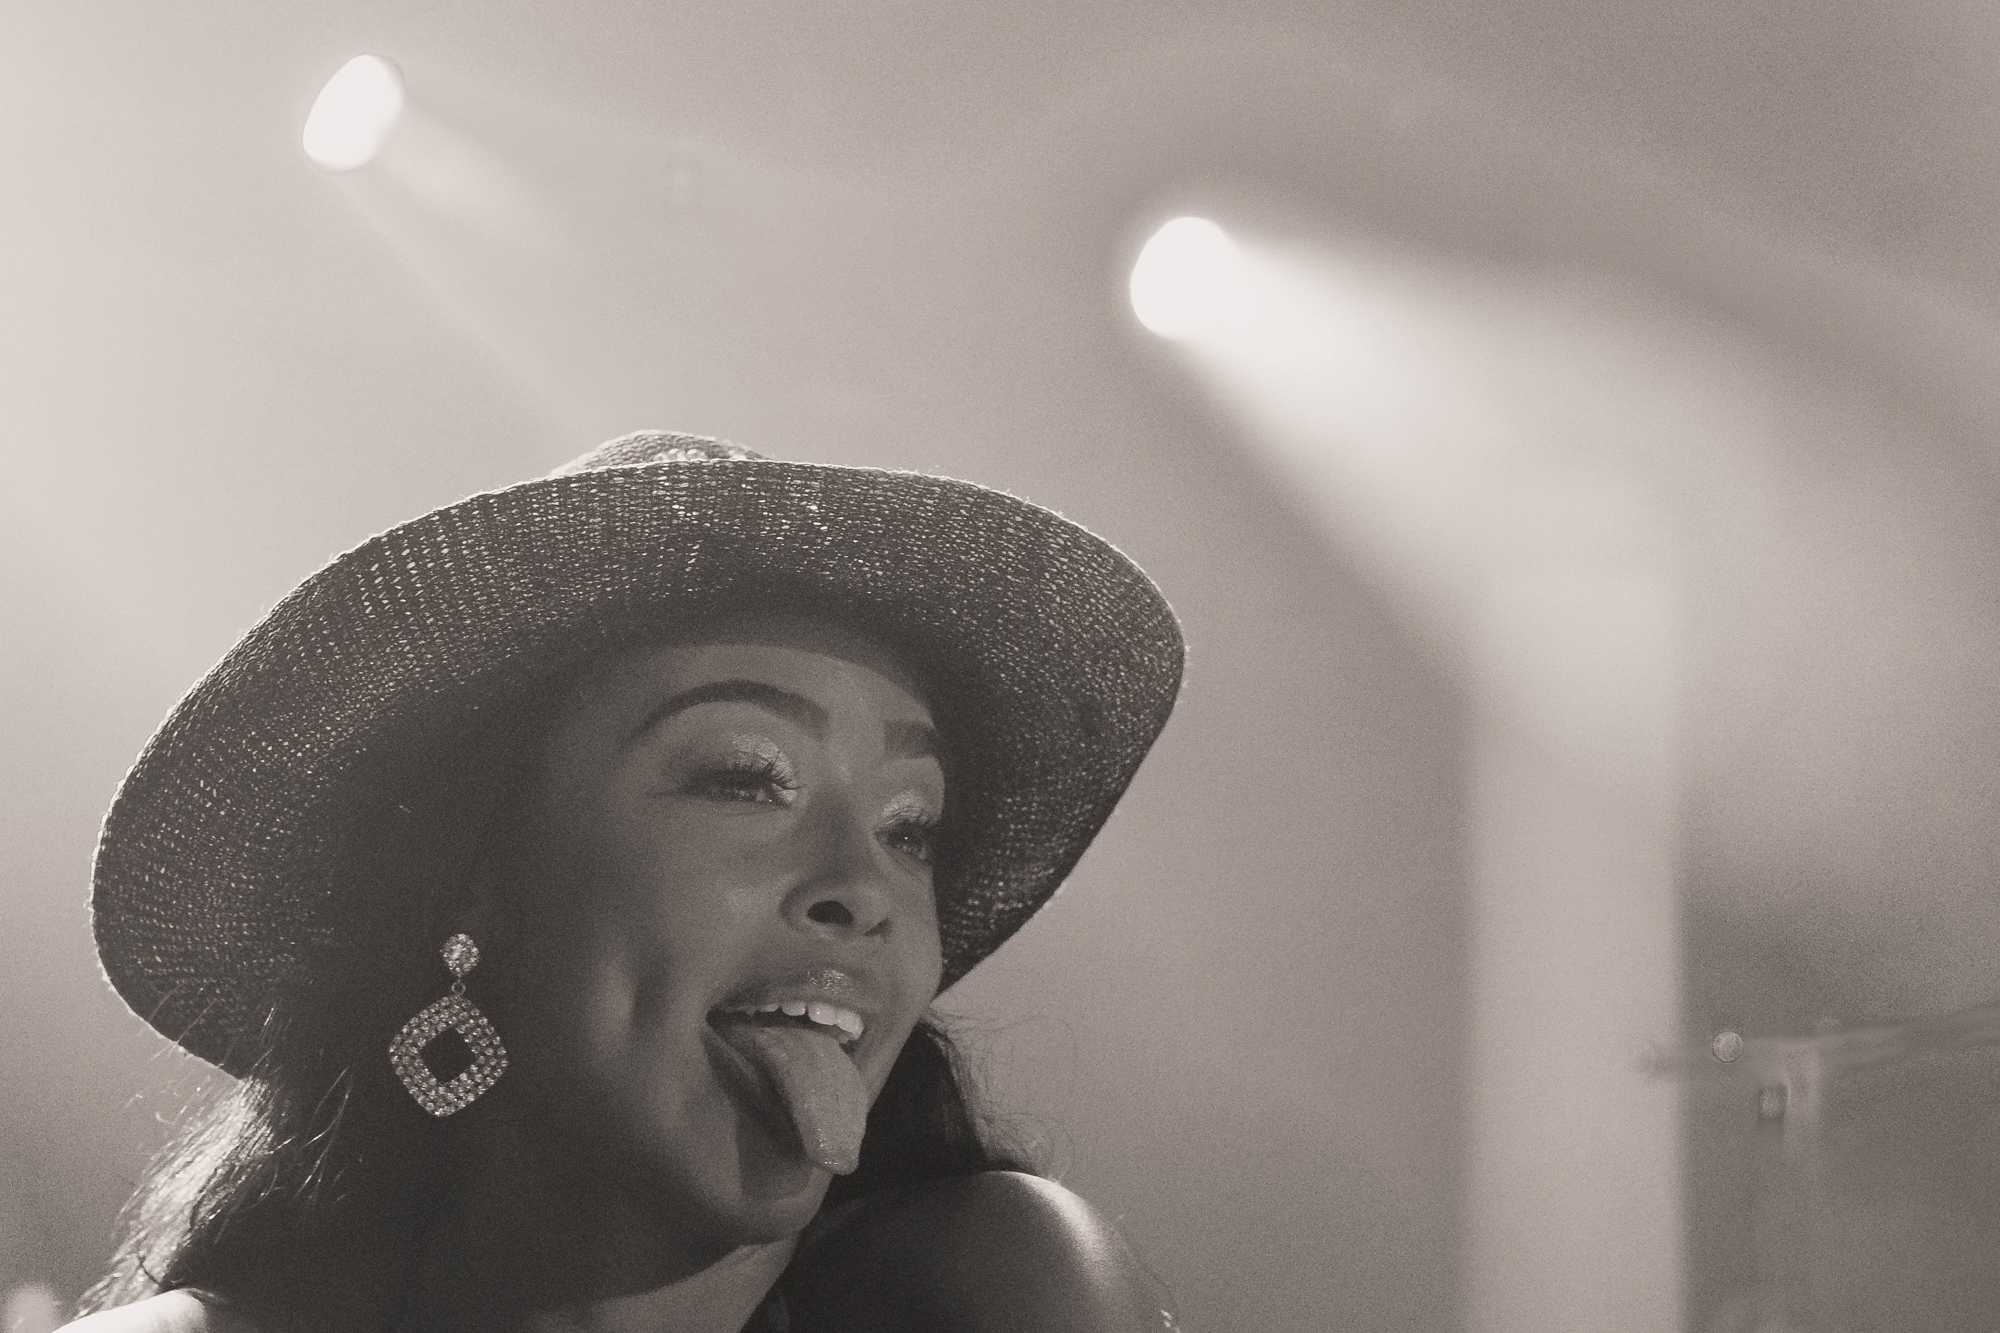 Nitty Scott opening for Jamila Woods at Union Stage in Washington, DC - 6/4/19 (Photo by Avery Junius)